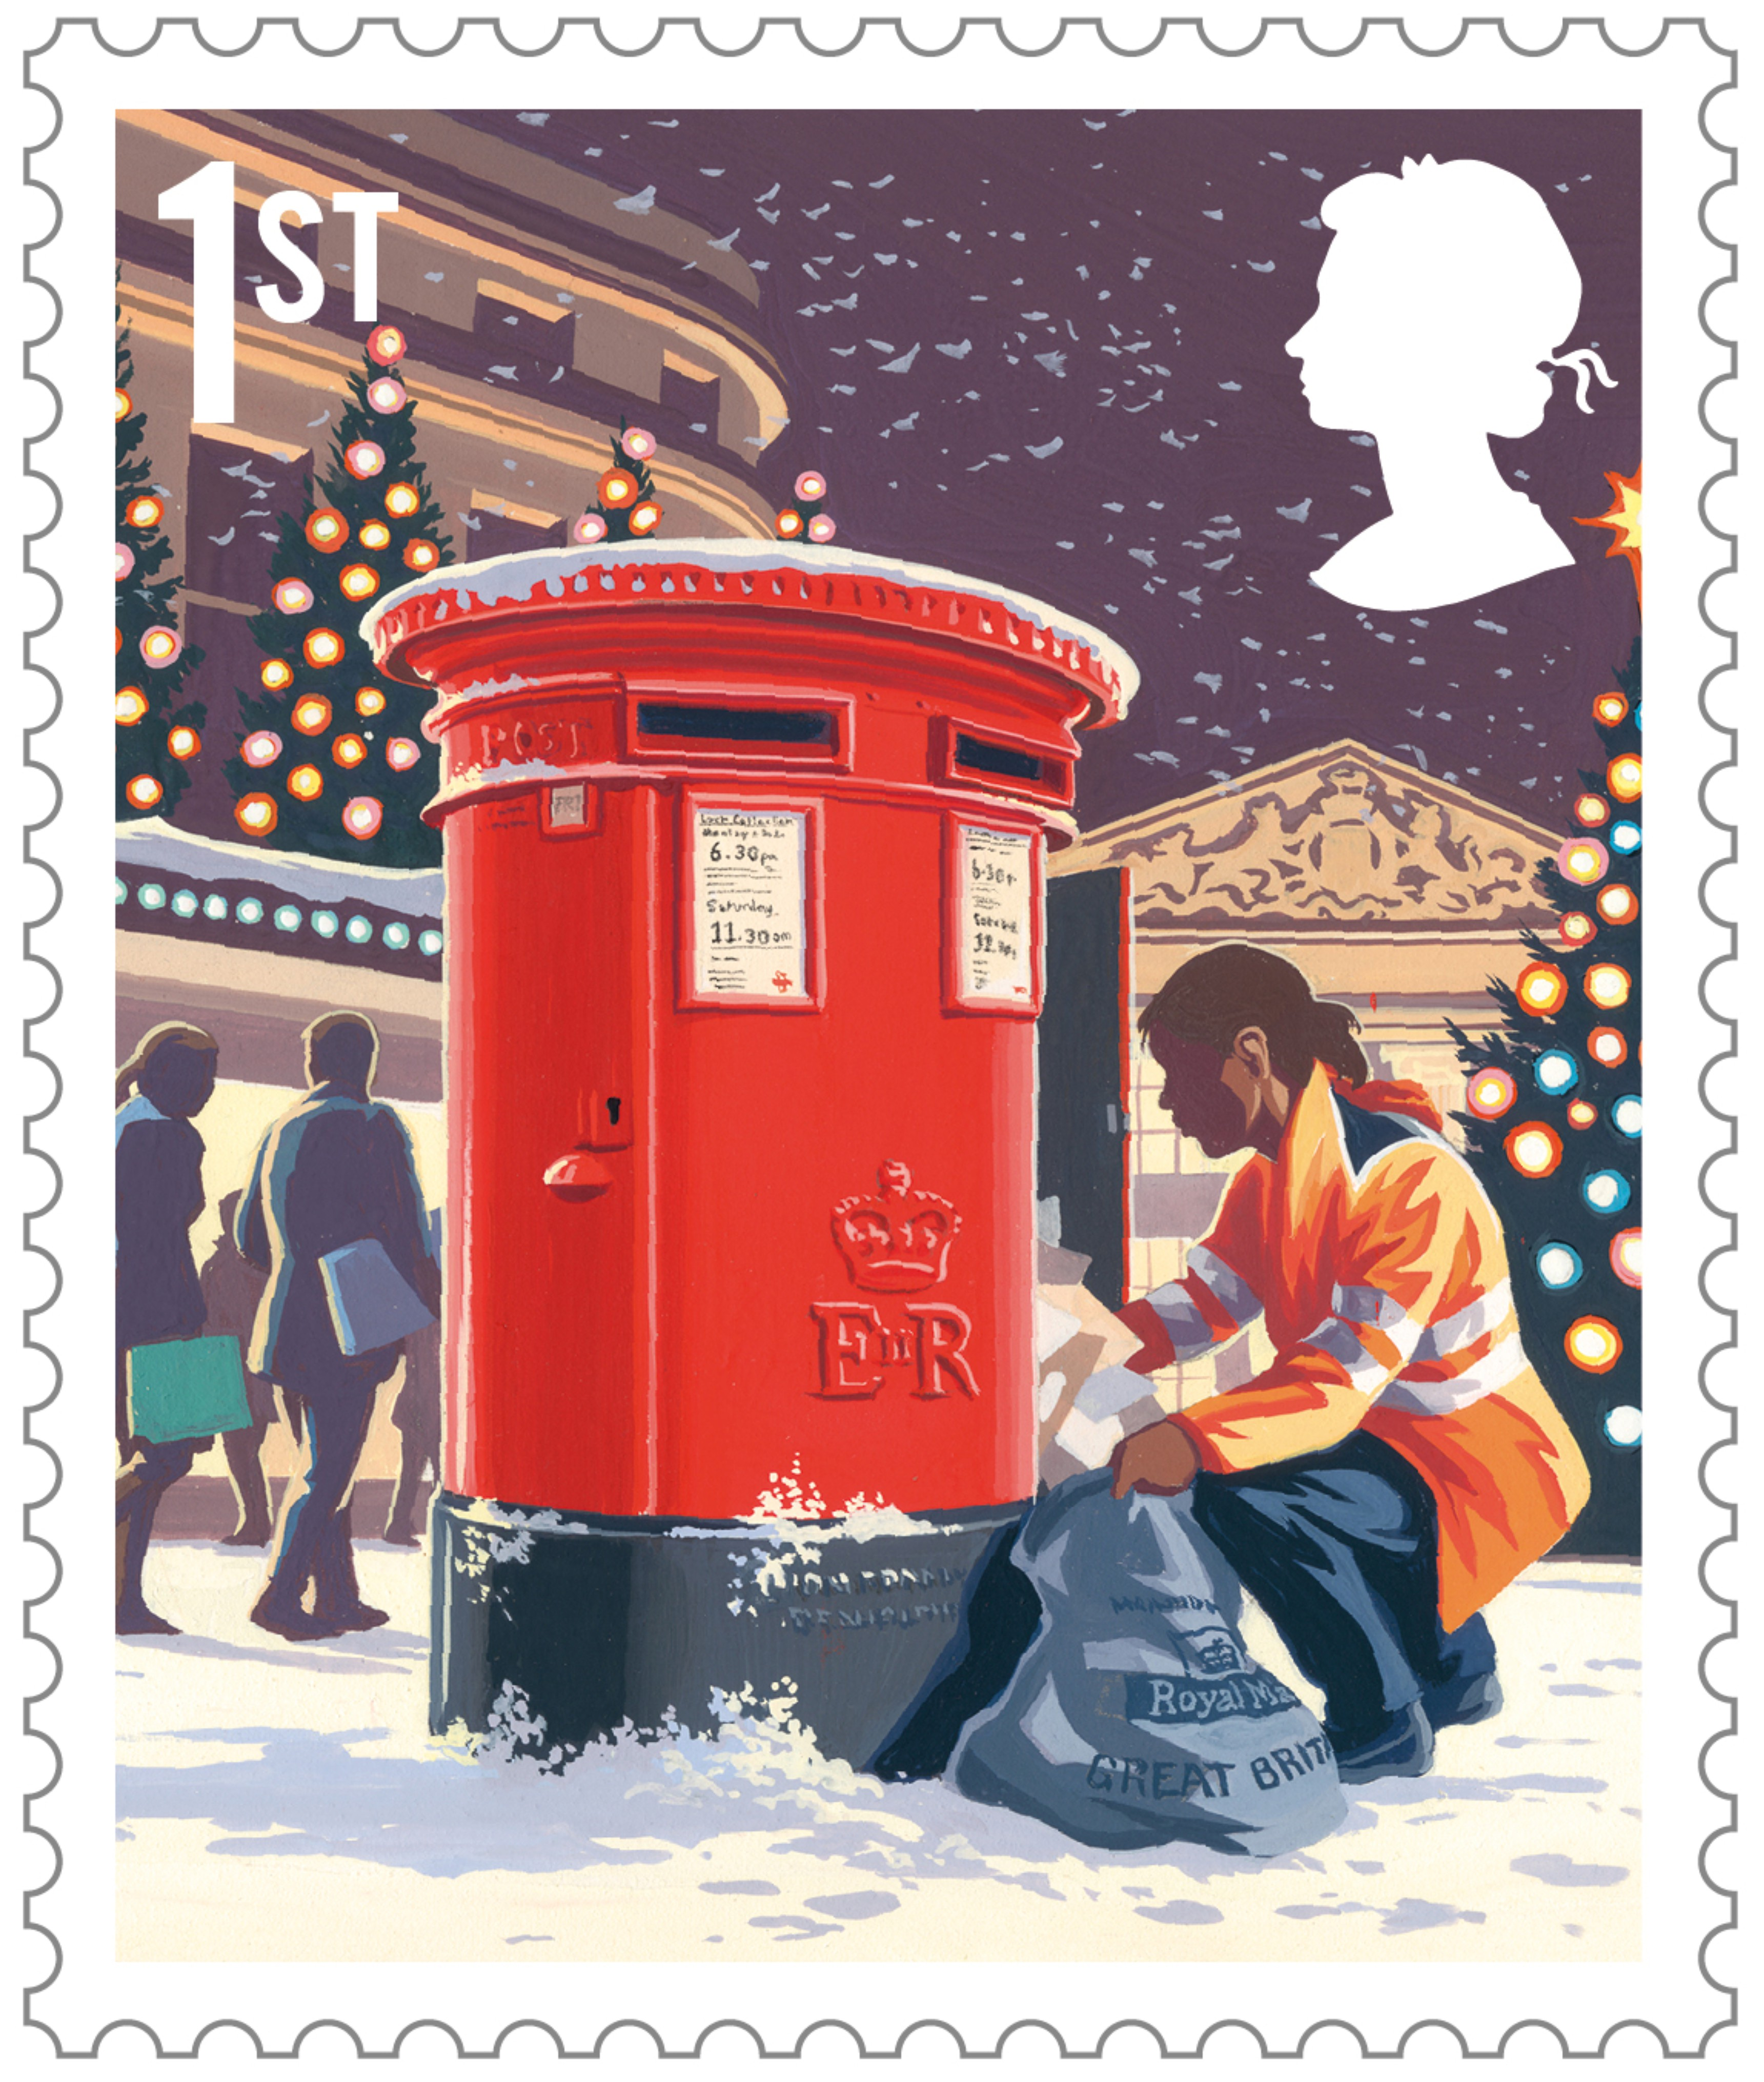 Royal Mail Reveals 2018 Christmas Special Stamps